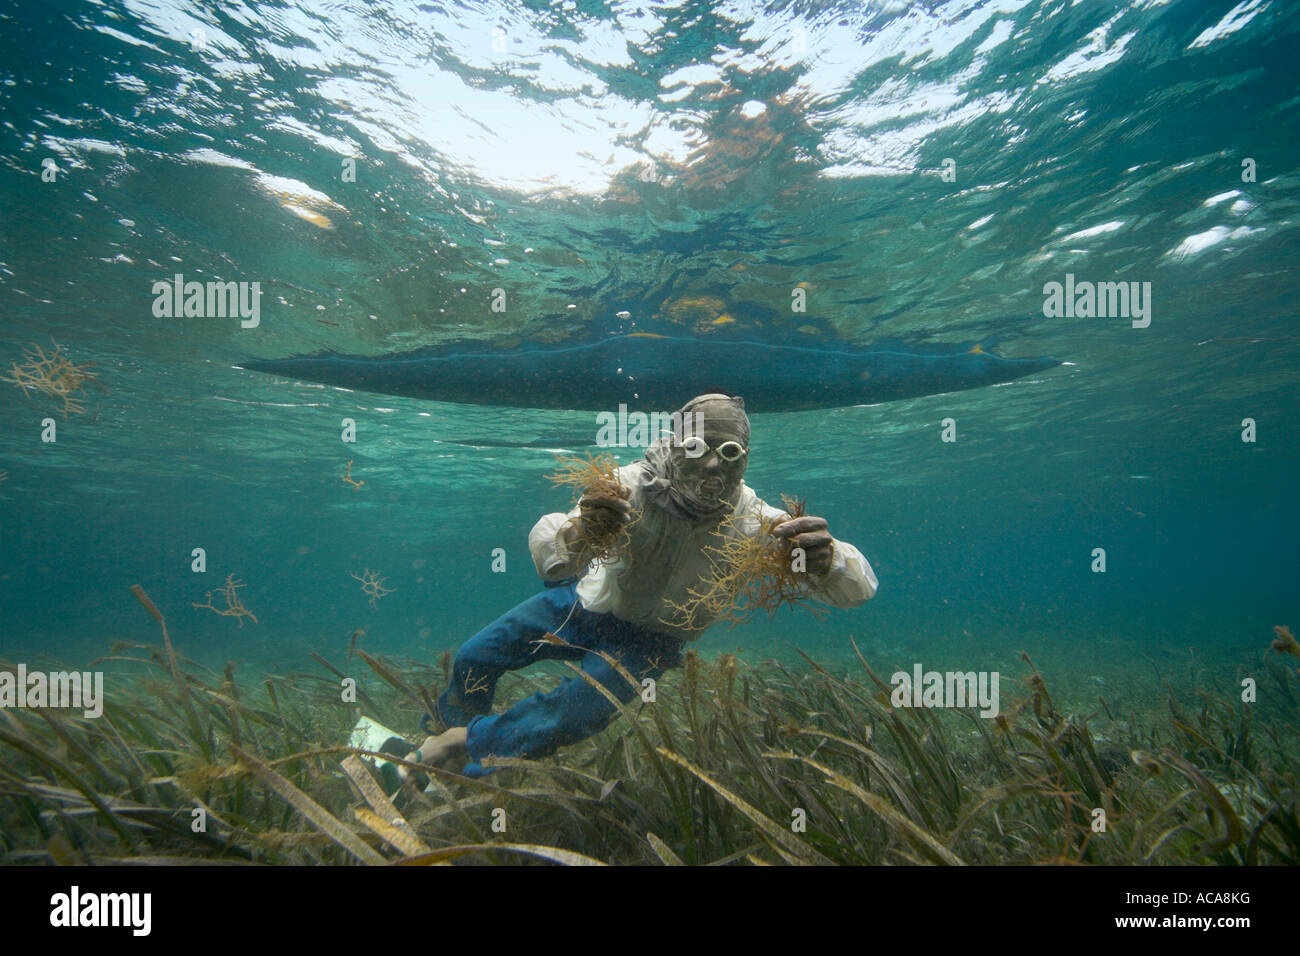 Philippine diver harvesting seaweed. Using a T-Shirt on his head as sun protection, Philippines, Pacific Ocean, Stock Photo